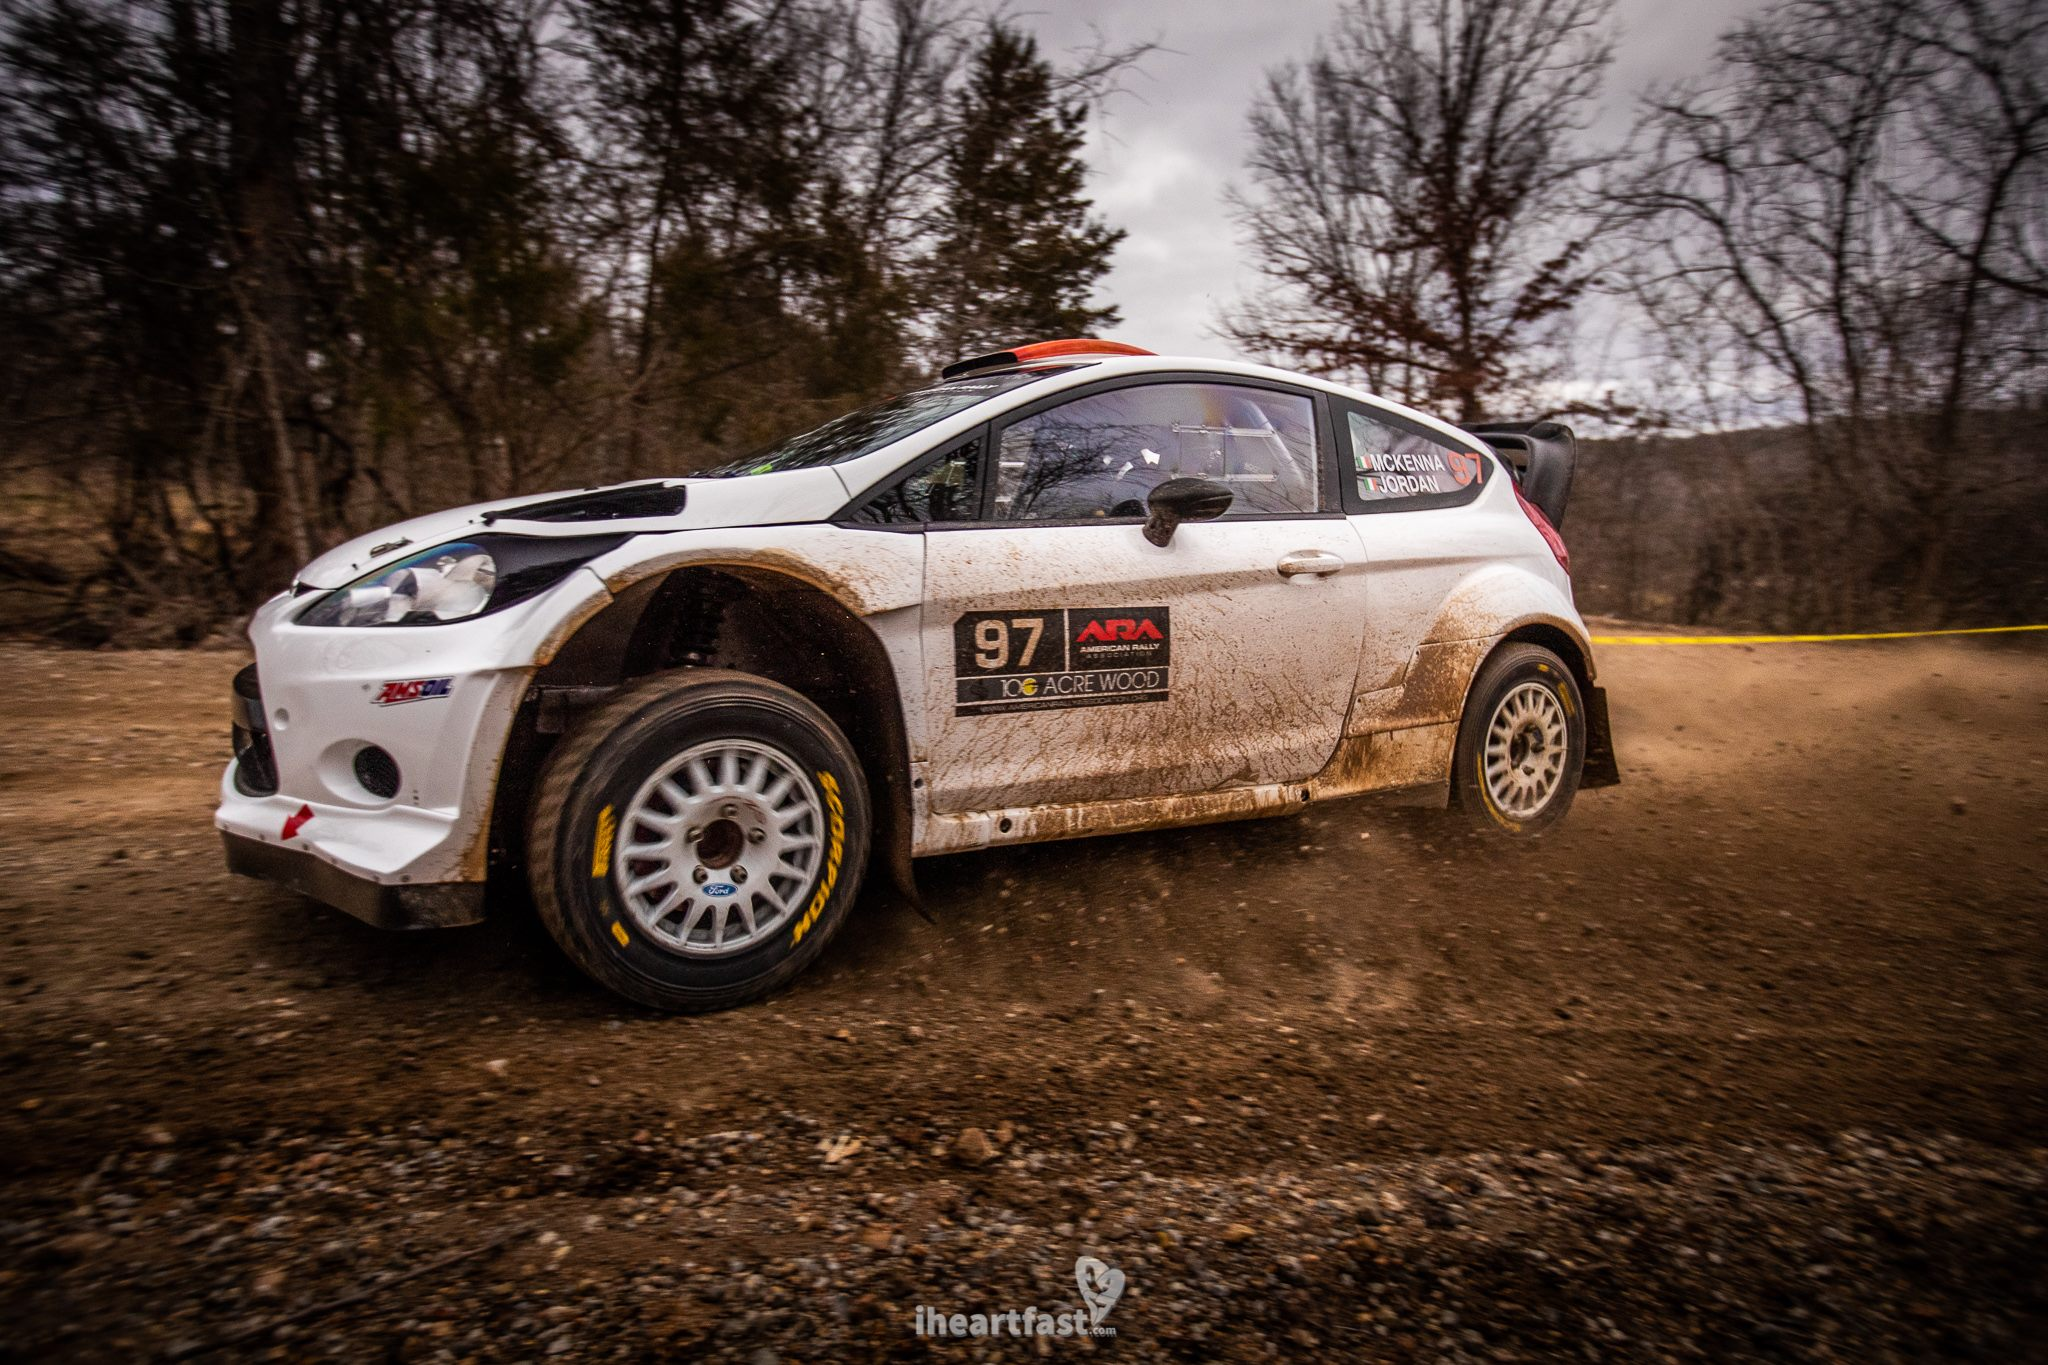 Barry McKenna and Leon Jordan driving to victory at American Rally Association 100 Acre Wood